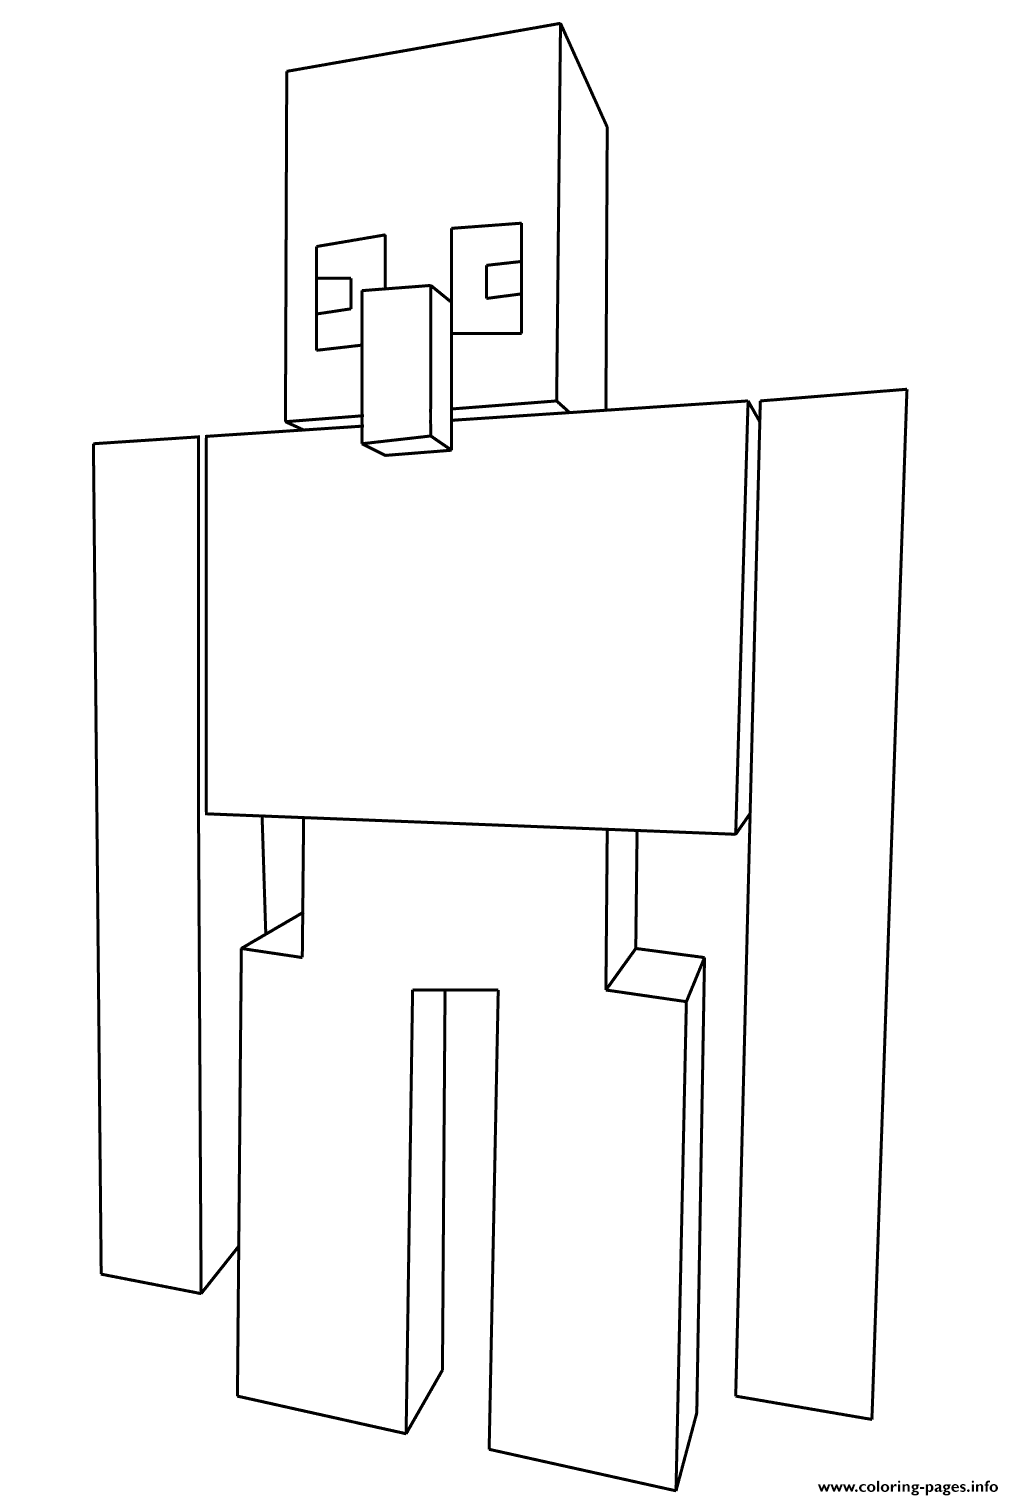 Minecraft Iron Golem Coloring Pages Printable